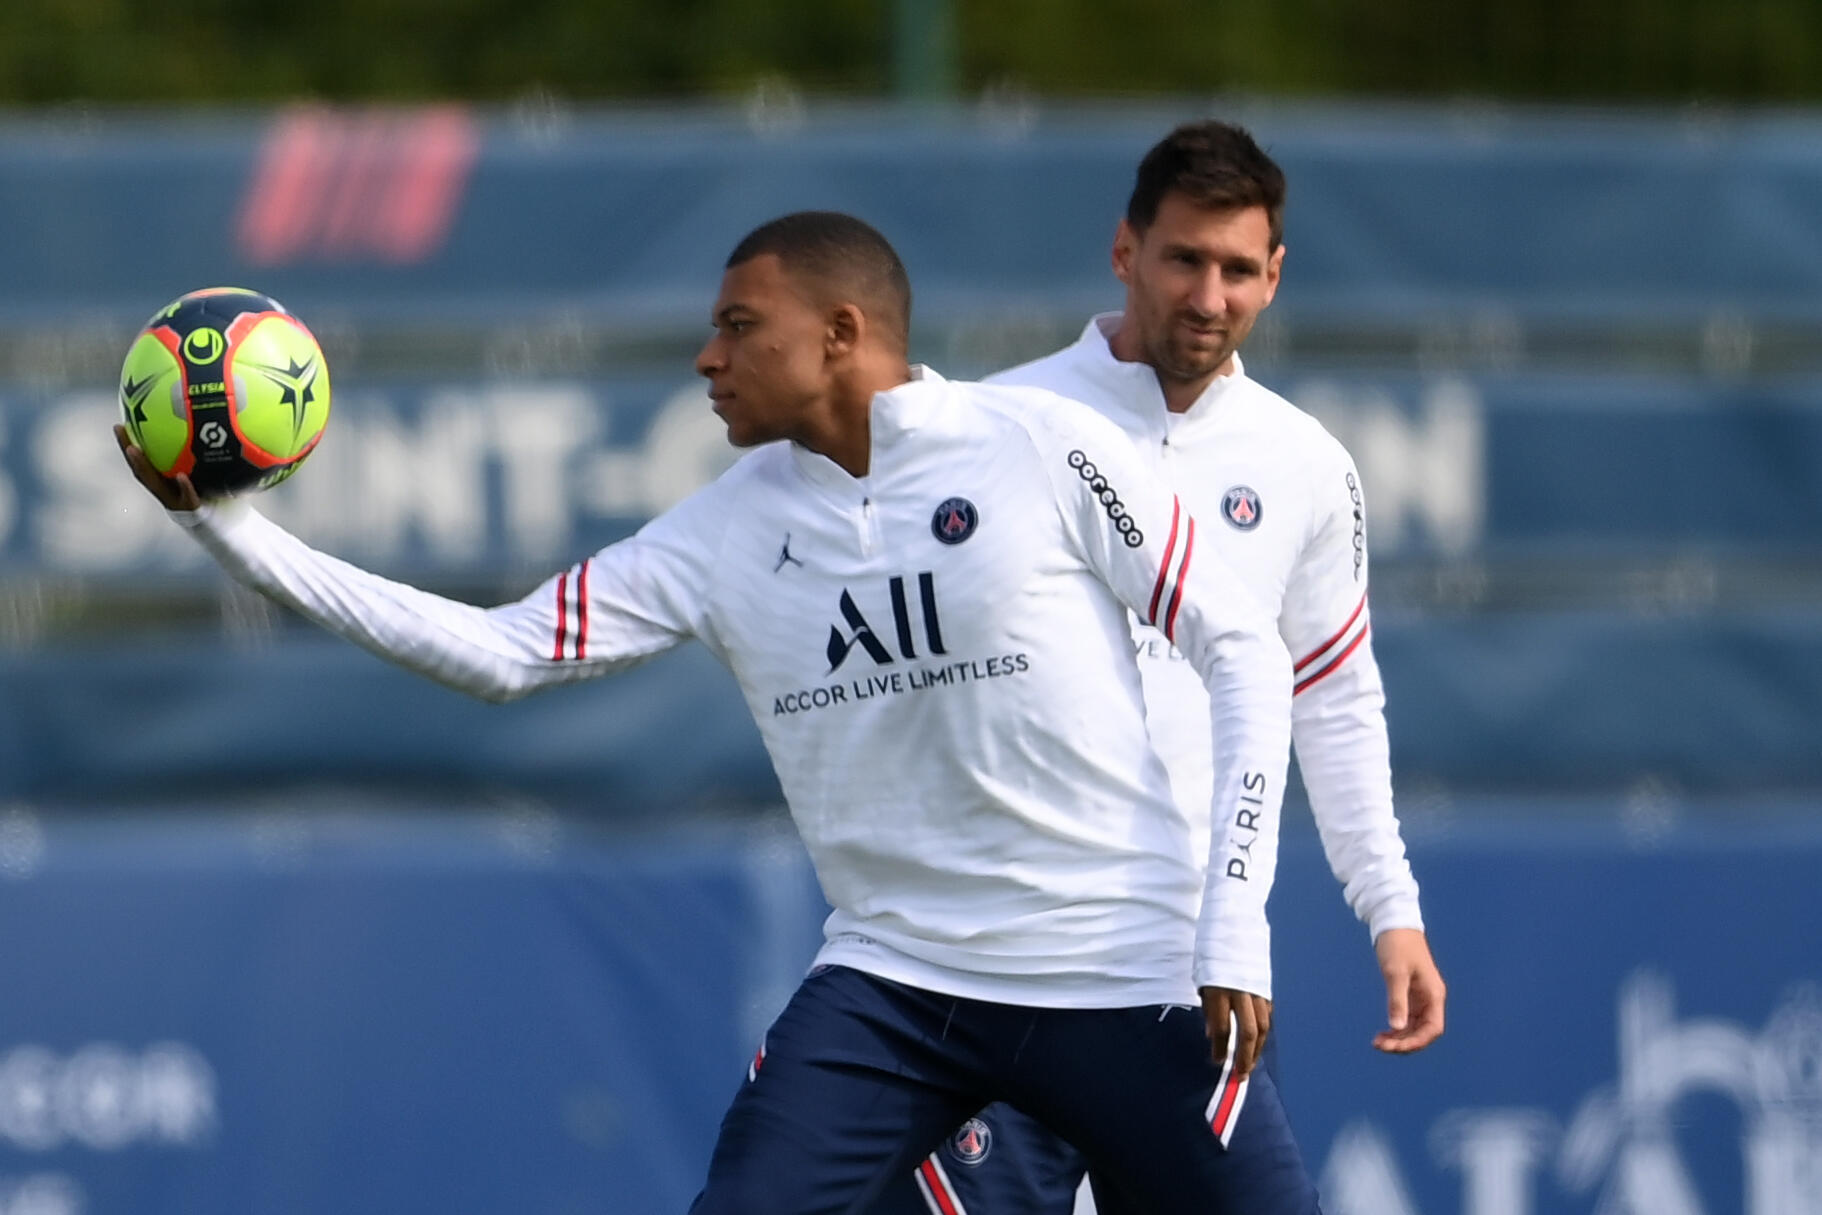 Lionel Messi with Kylian Mbappe. PSG play Club Brugge in their Champions League opener on Wednesday